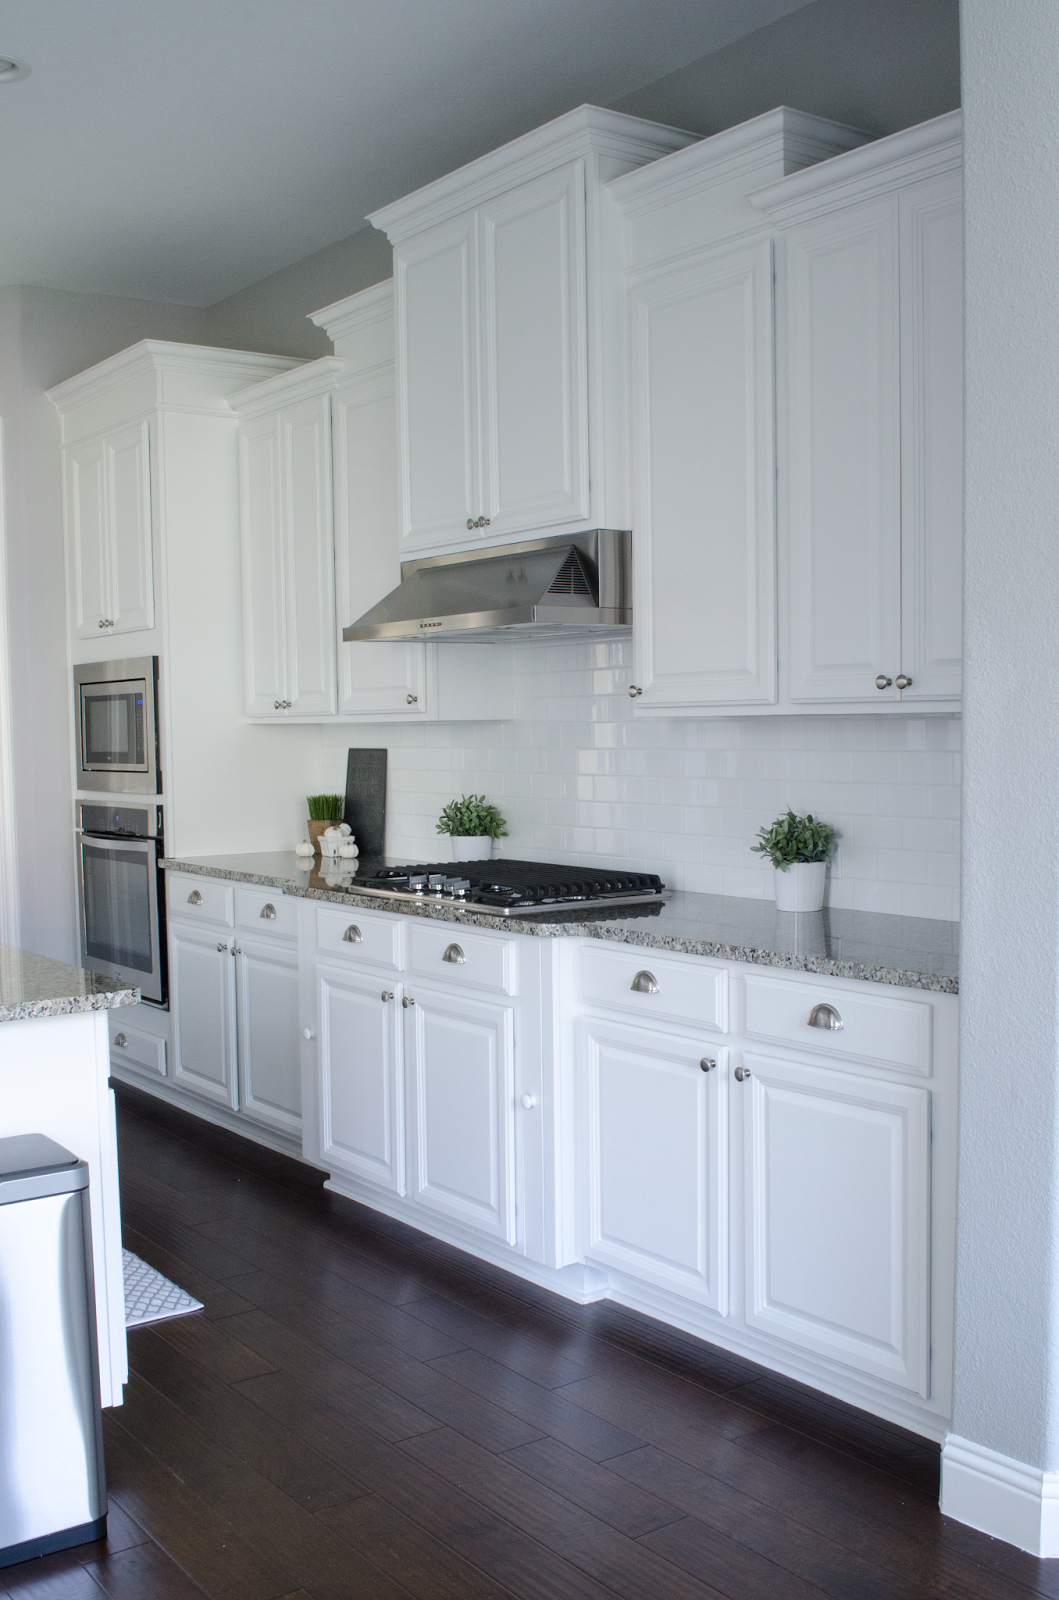 white kitchen cabinets | Kitchen // Love | Pinterest ...